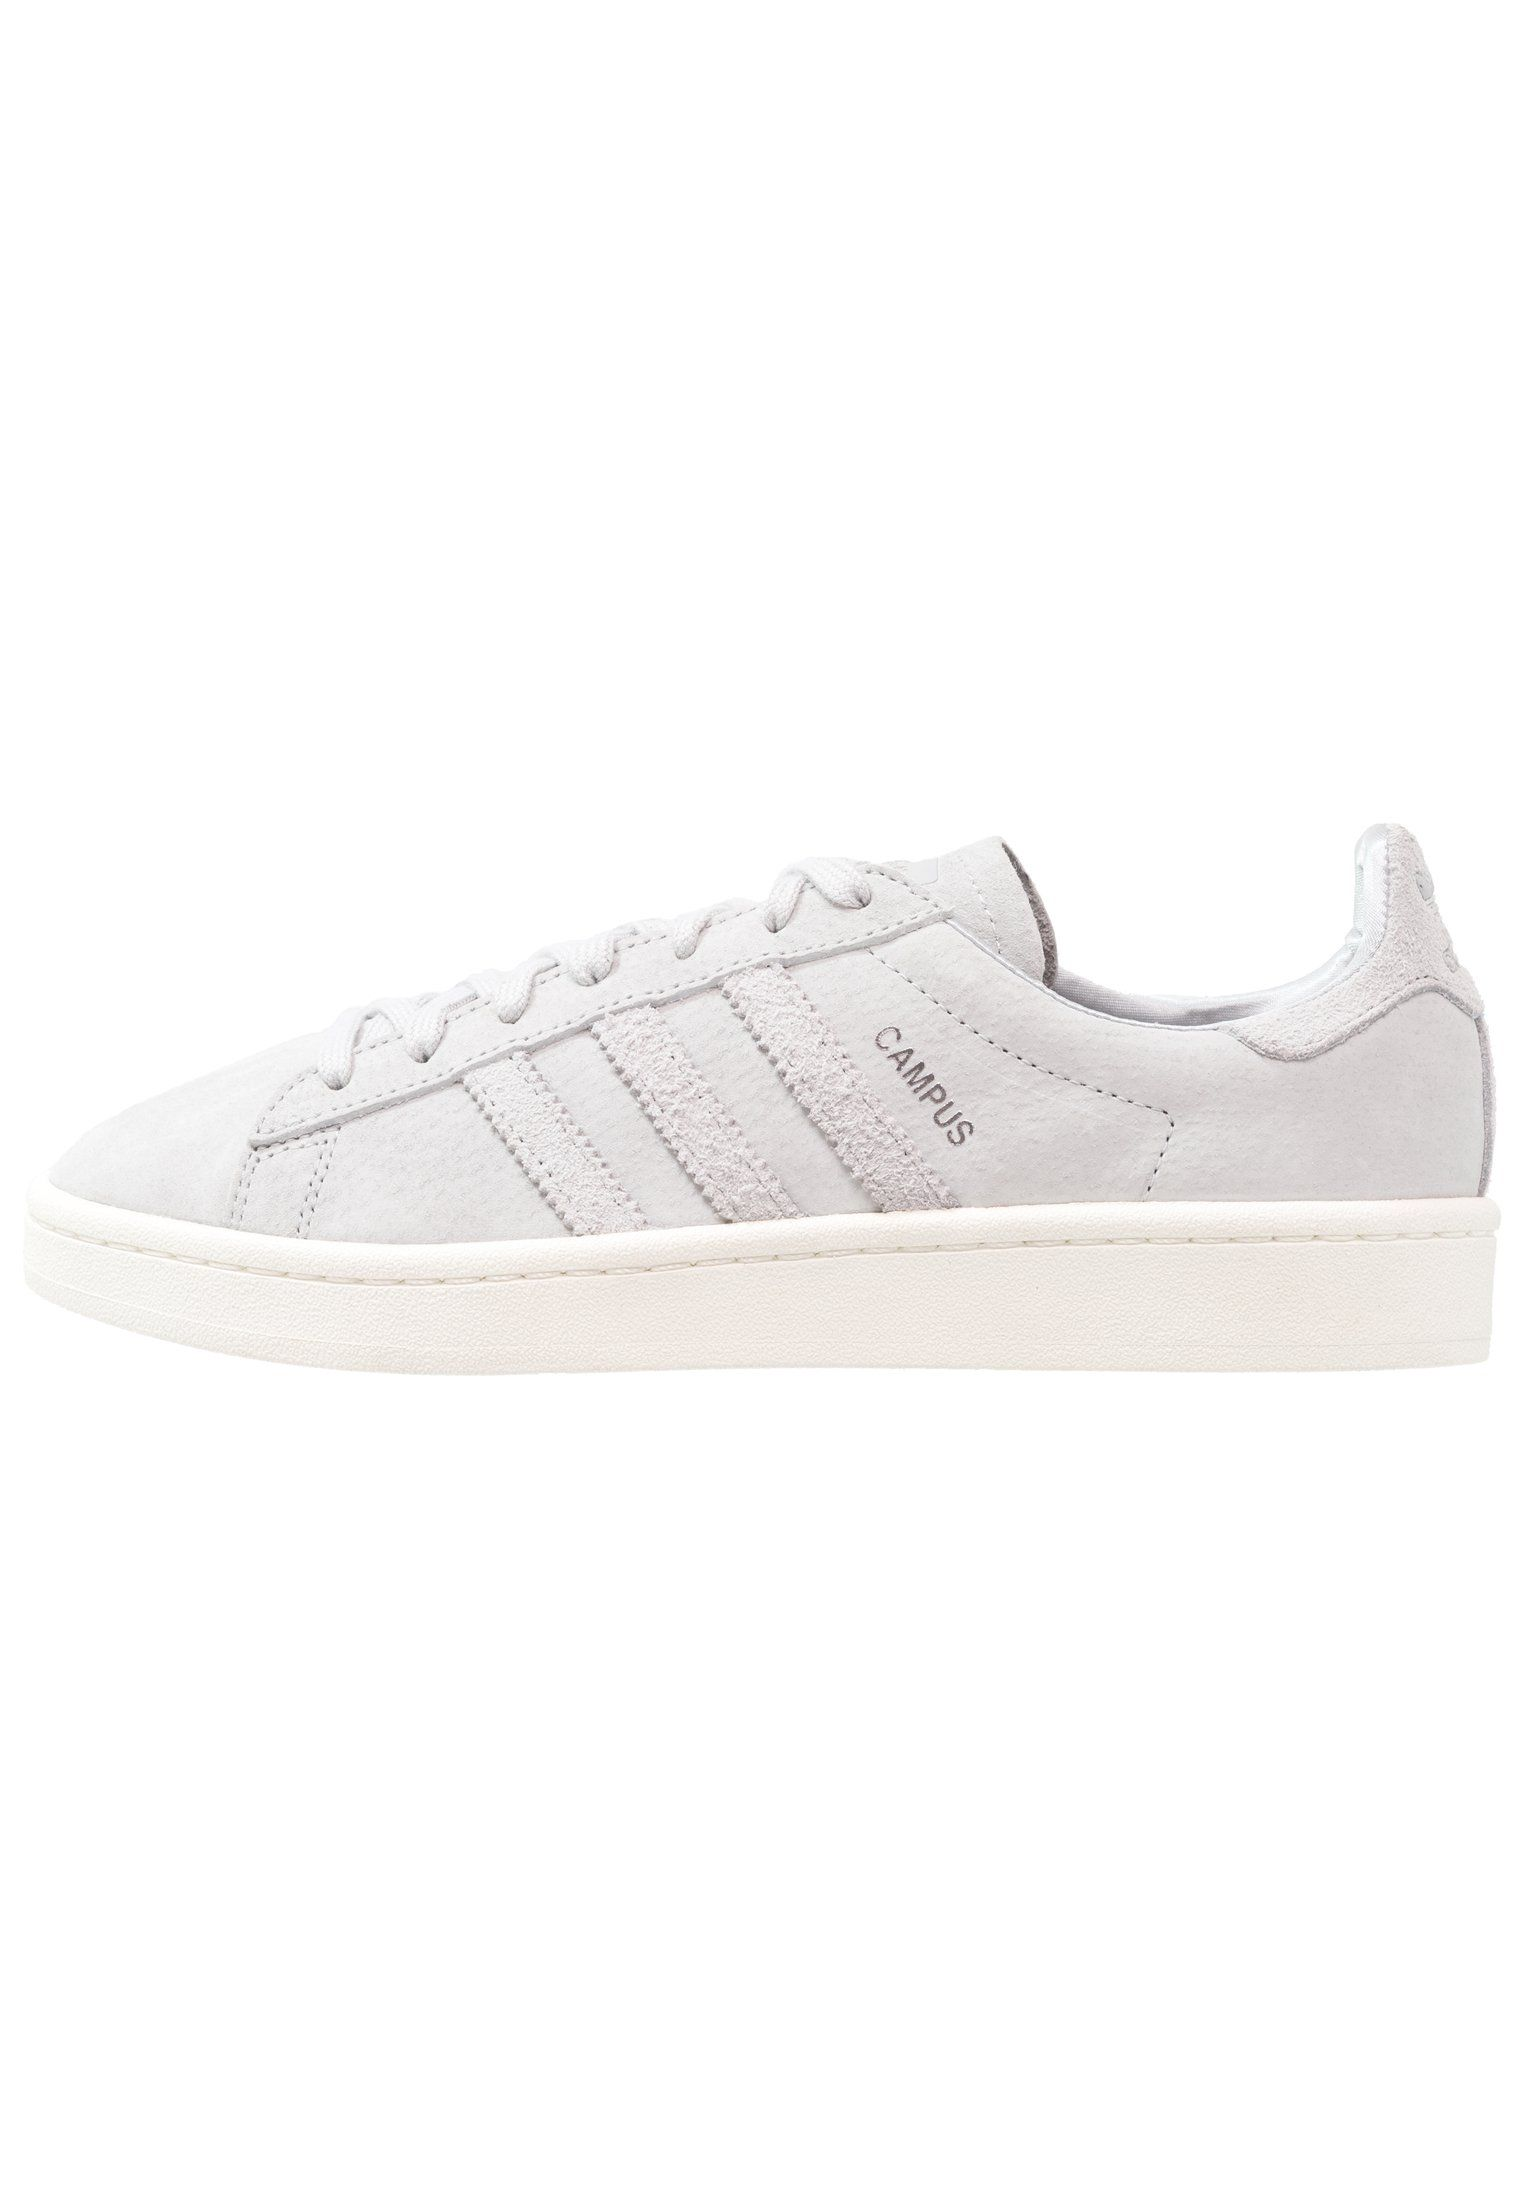 adidas Originals CAMPUS - EXCLUSIVE - Tenisówki i Trampki - grey two/ offwhite/silver